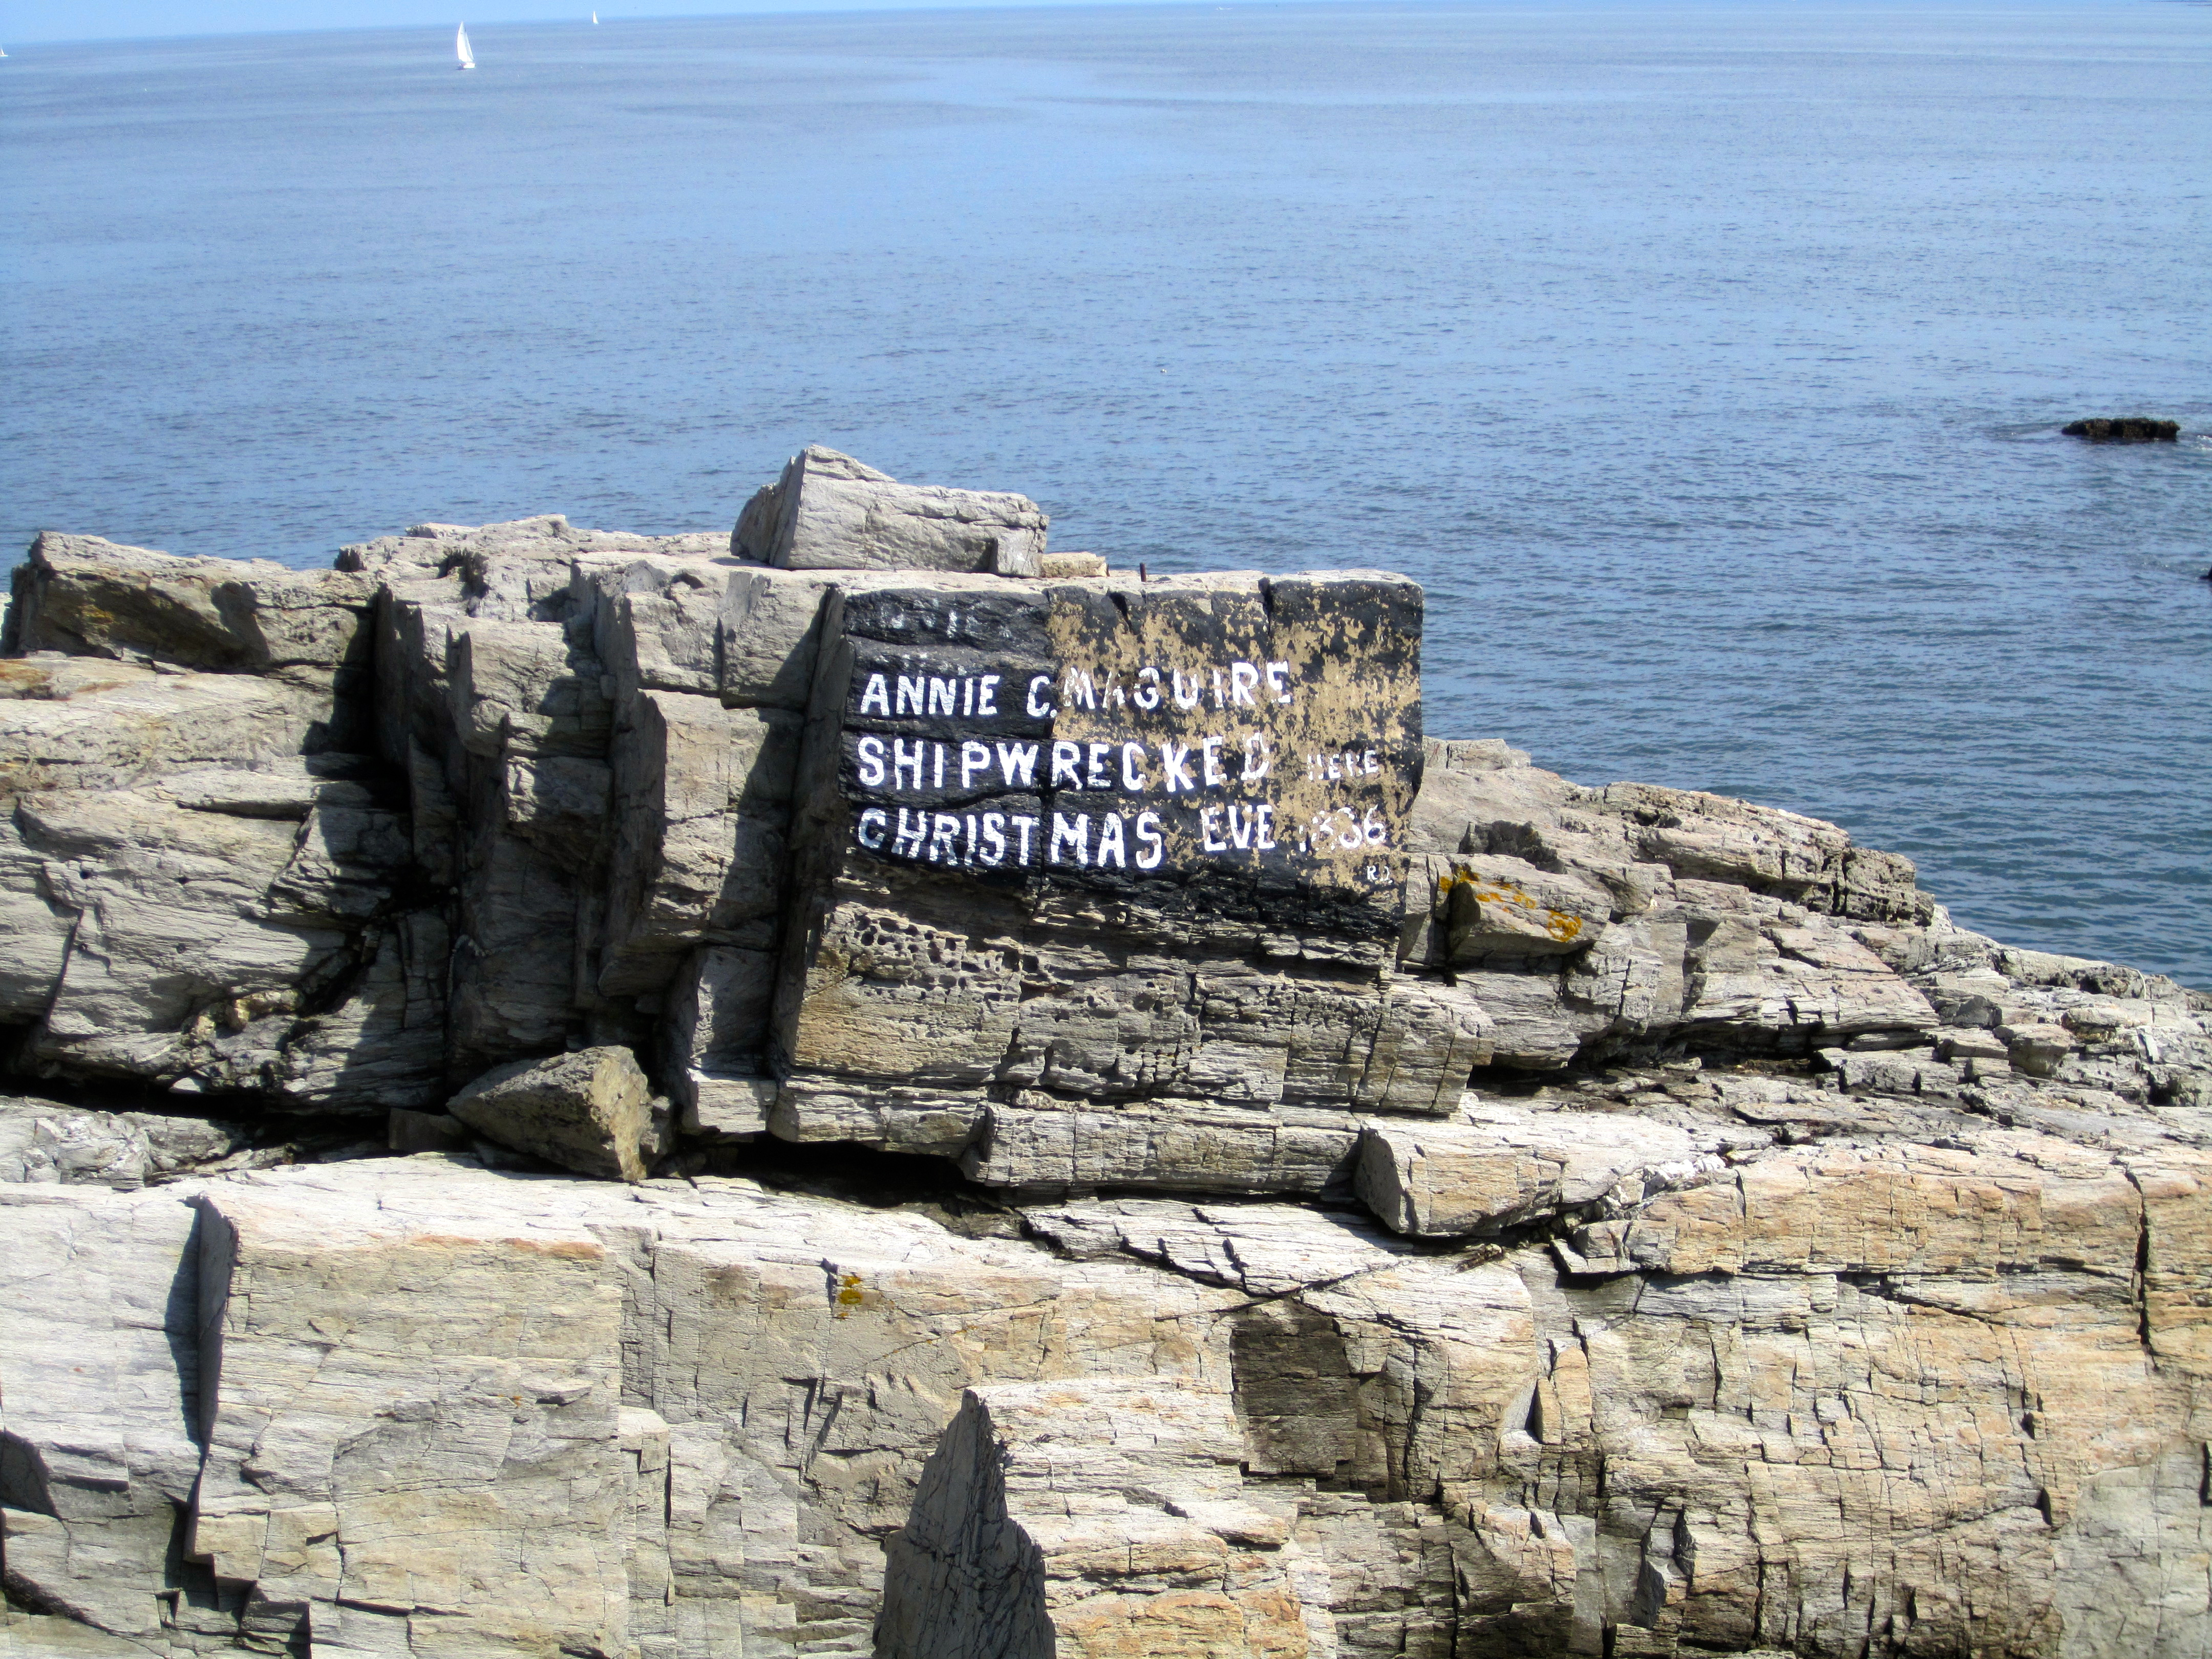 Memorial to the Annie C. Maguire shipwreck in 1886. Written by lighthouse keeper John A. Strout in 1912. Since then, subsequent keepers have maintained the memorial, and its original lettering is seen in this photo.